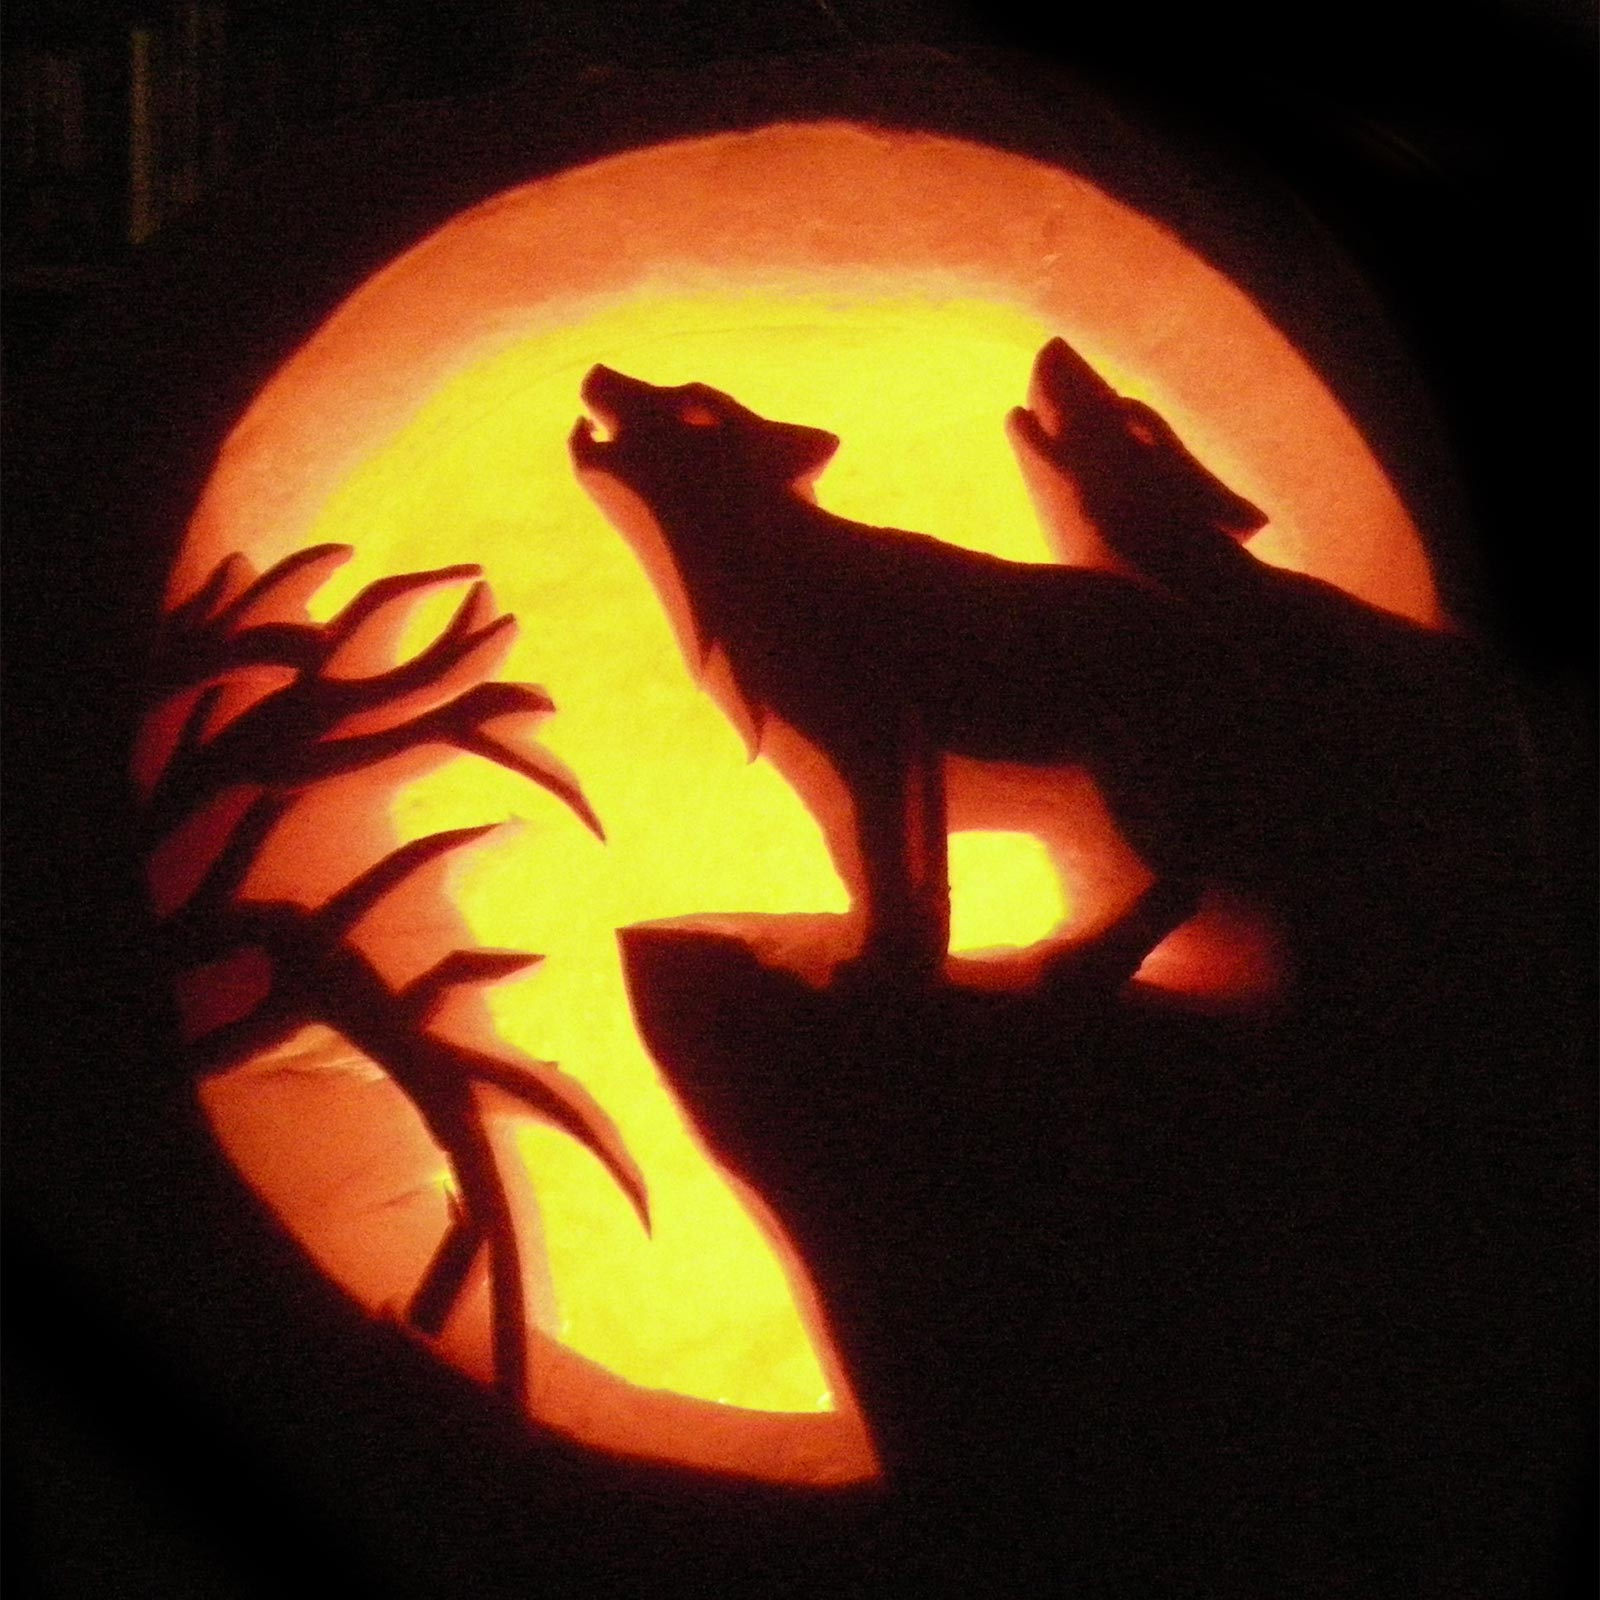 scary wolf pumpkin carving ideas 2015 - Free Scary Halloween Pumpkin Carving Patterns